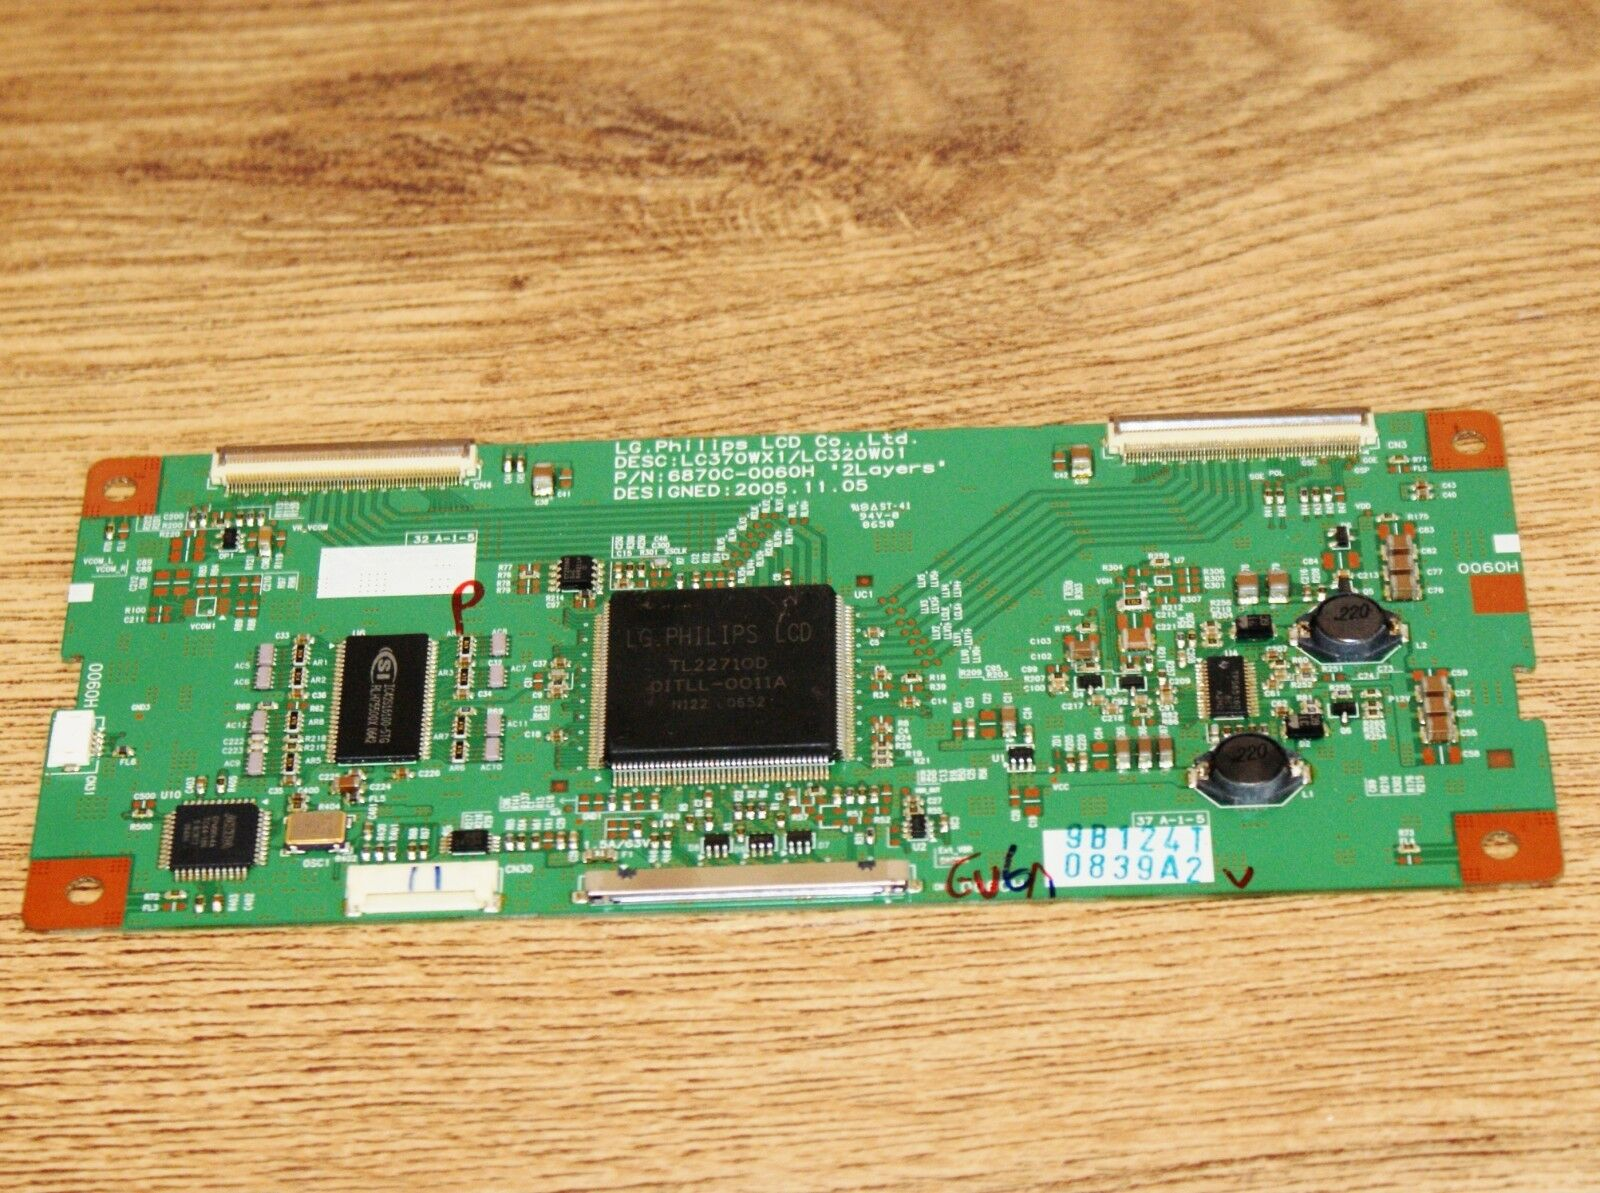 Logic Tcon Lvds Board For 37d8600 37lc2db Rz 37lz55 Tv 6870c 0060h 2005 Lg 50 Inch Plasma Screen Circuit Boards In Back Of 1 1only Available